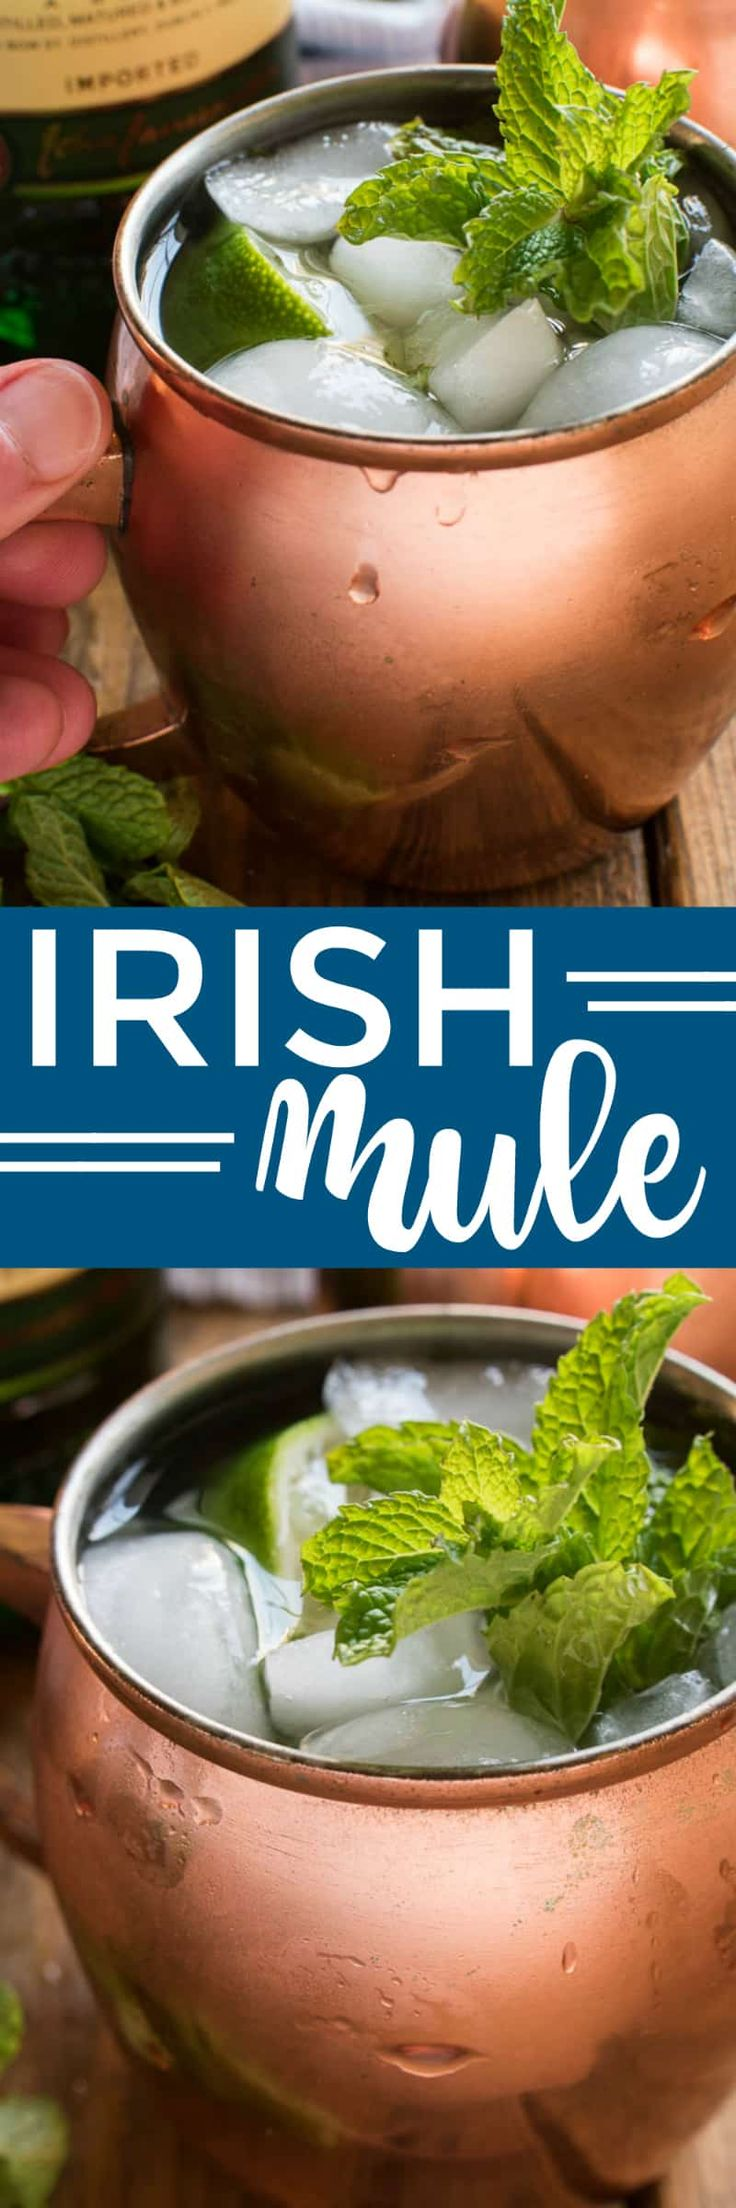 If you love Moscow Mules, you'll love this delicious Irish Mule twist! Made with Irish whiskey, ginger beer, lime juice, and muddled mint, this cocktail has everything you need to get you through the cold days of winter. They come together quickly, with just a few ingredients, and can be made individually or by the pitcherful. Which means they're perfect for game days, St. Patrick's Day, or weekends with friends! Any way you mix it, the Irish Mule is sure to become a new favorite for whiskey…